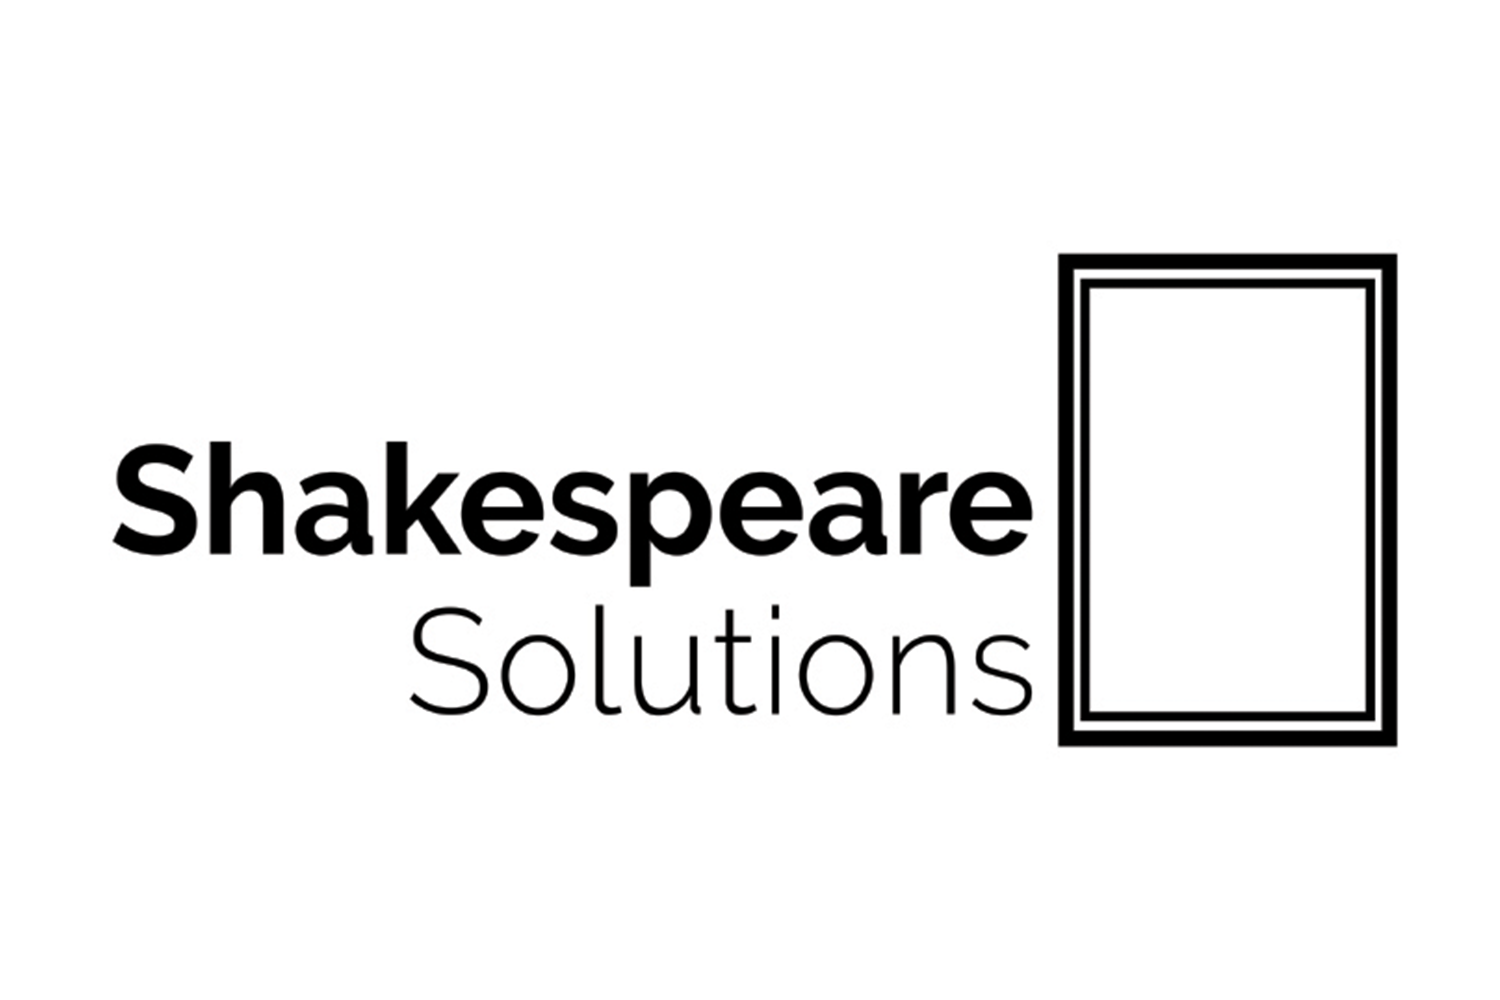 Shakespeare Solutions